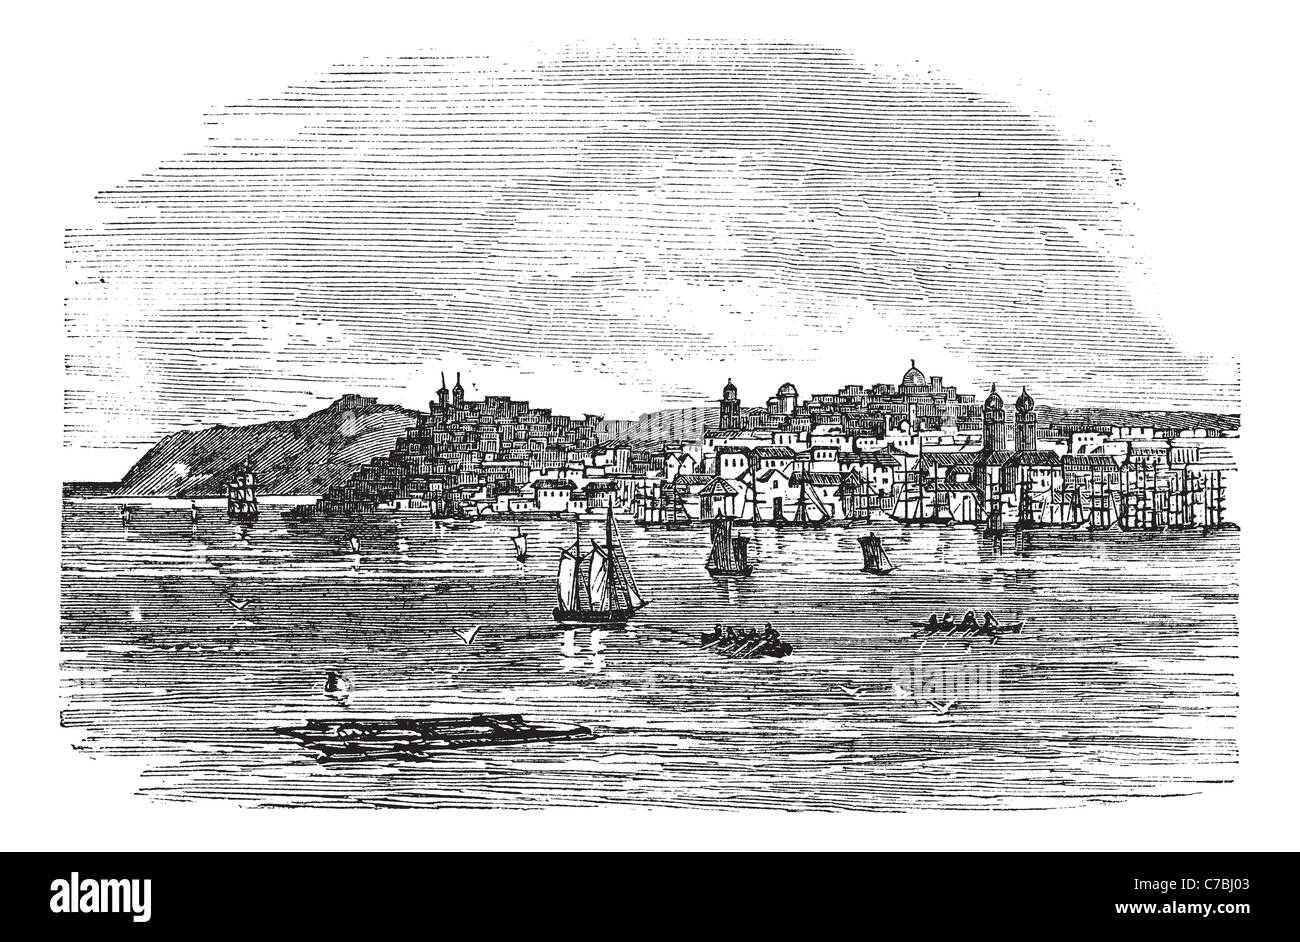 Galati In Romania During The 1890s Vintage Engraving Old Engraved Illustration Of